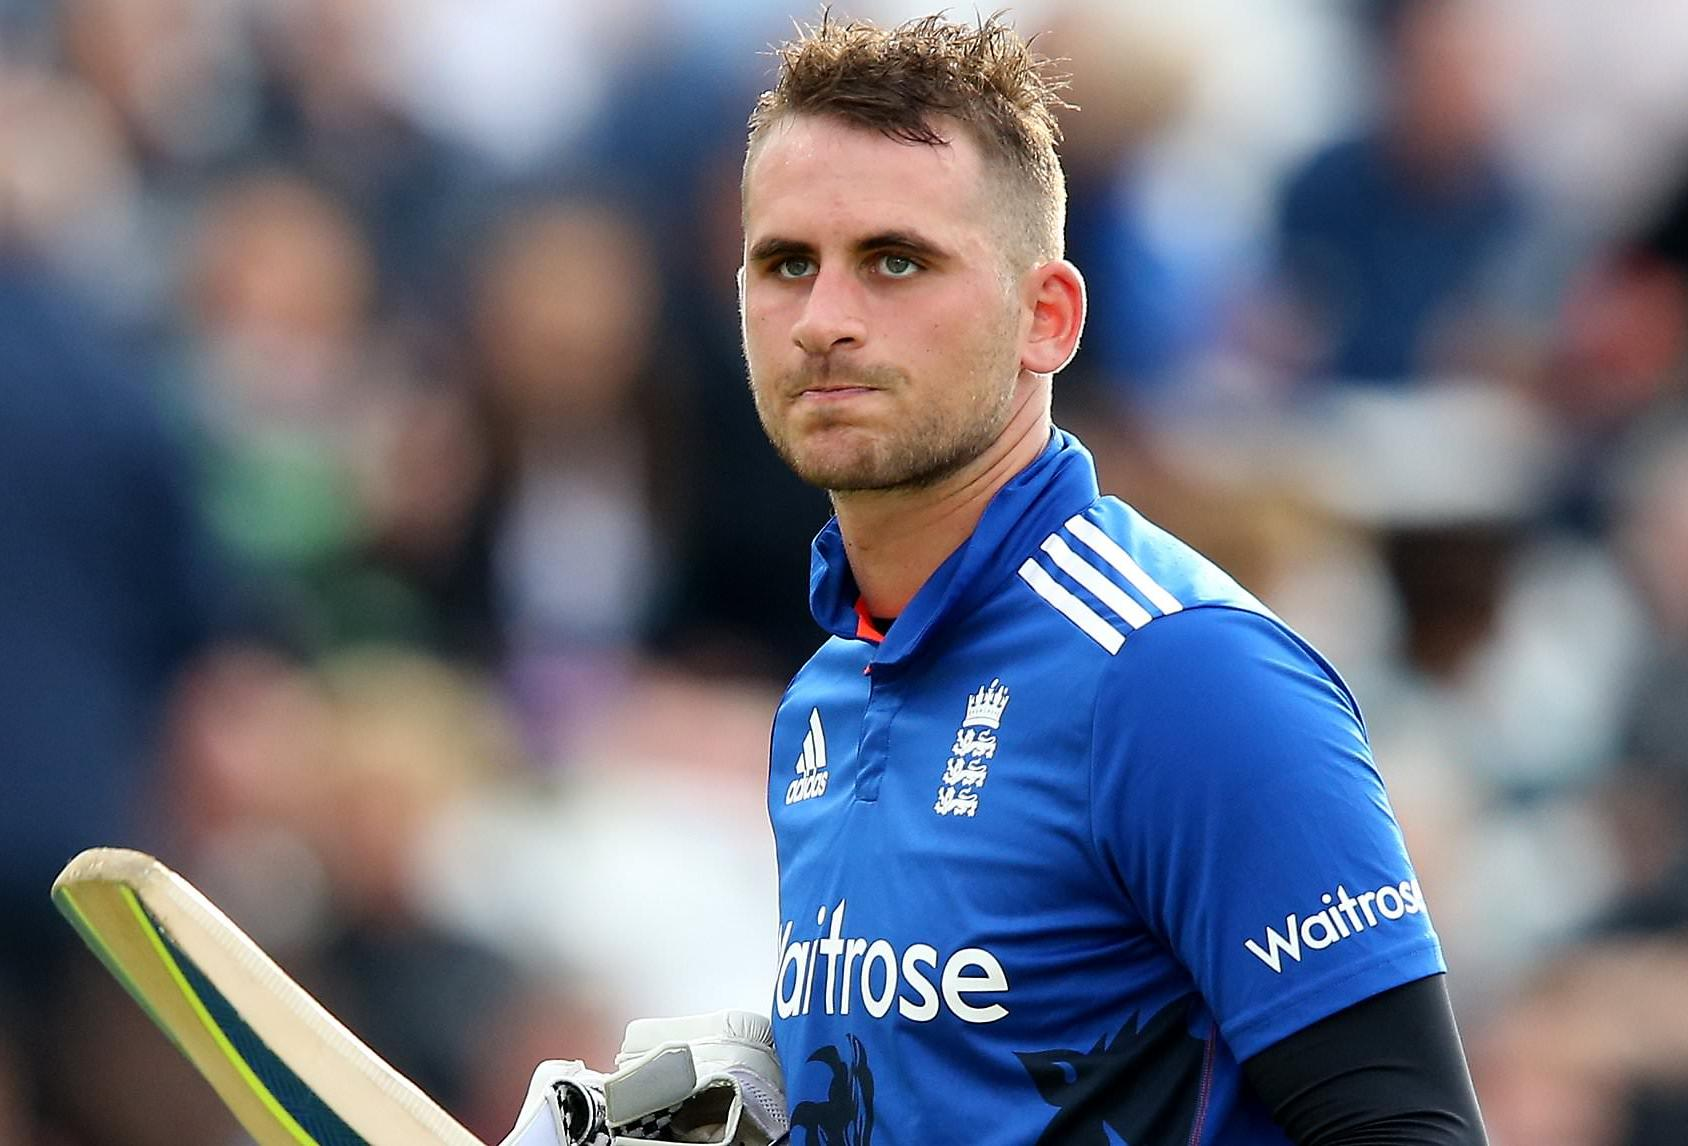 Hales is not being treated well by England | AFP